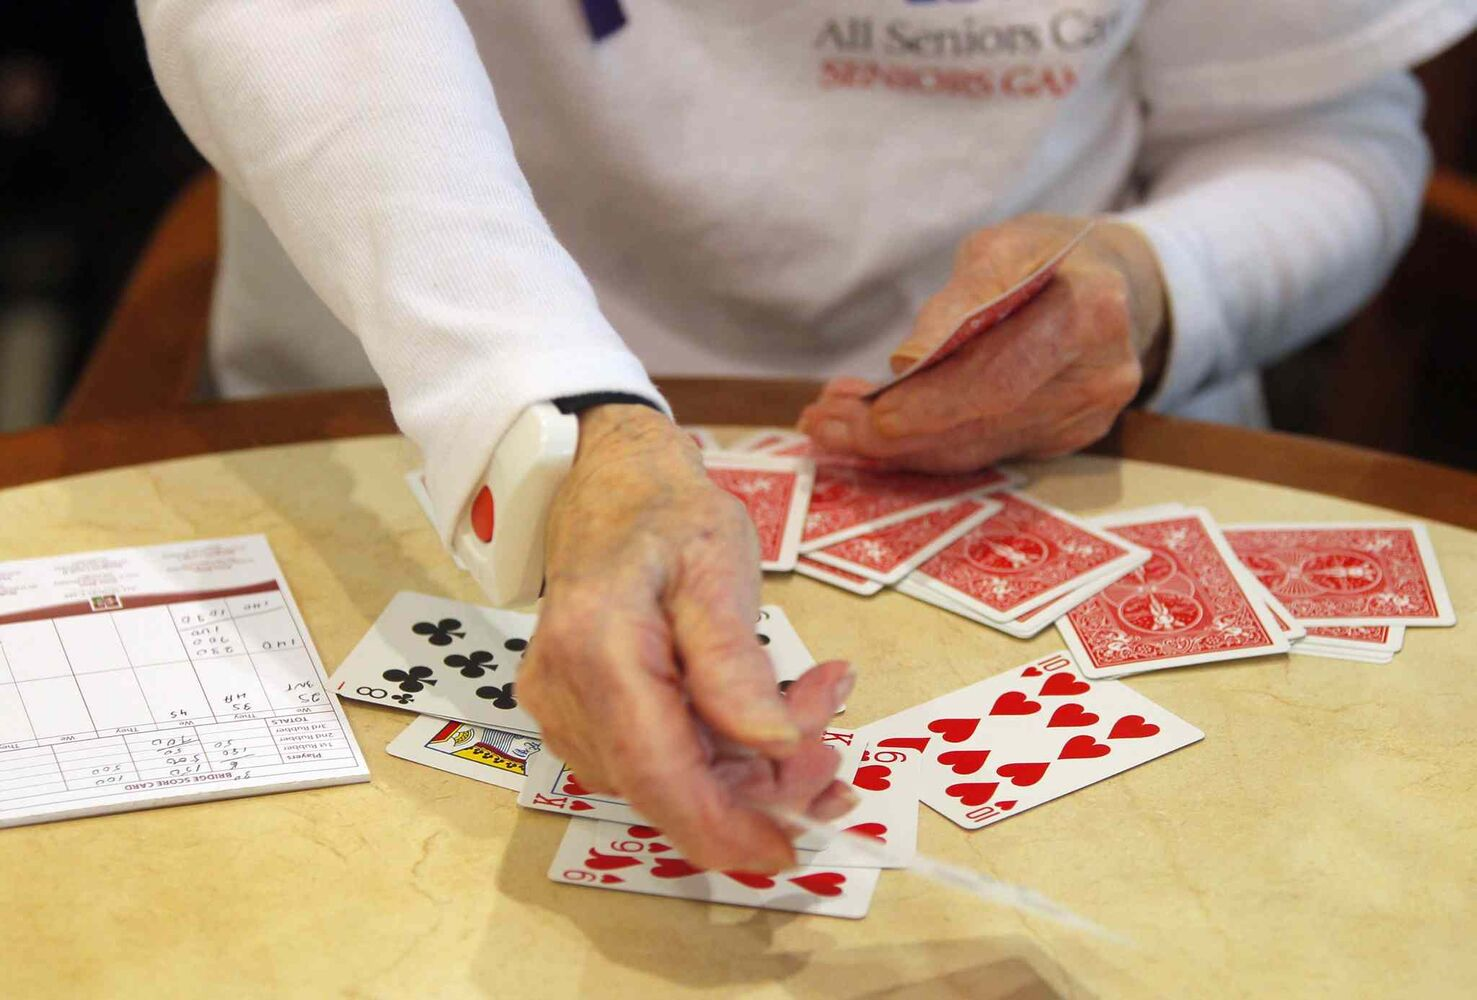 Residents at Shaftesbury Park Retirement Residence are taking part in the All Senior Care Games 2014 this week. It's the fifth year for the games, which see Seniors play bridge, Wii bowling, bocce and shuffleboard. Open ceremonies were Monday and the games end Friday. (Boris Minkevich / Winnipeg Free Press)